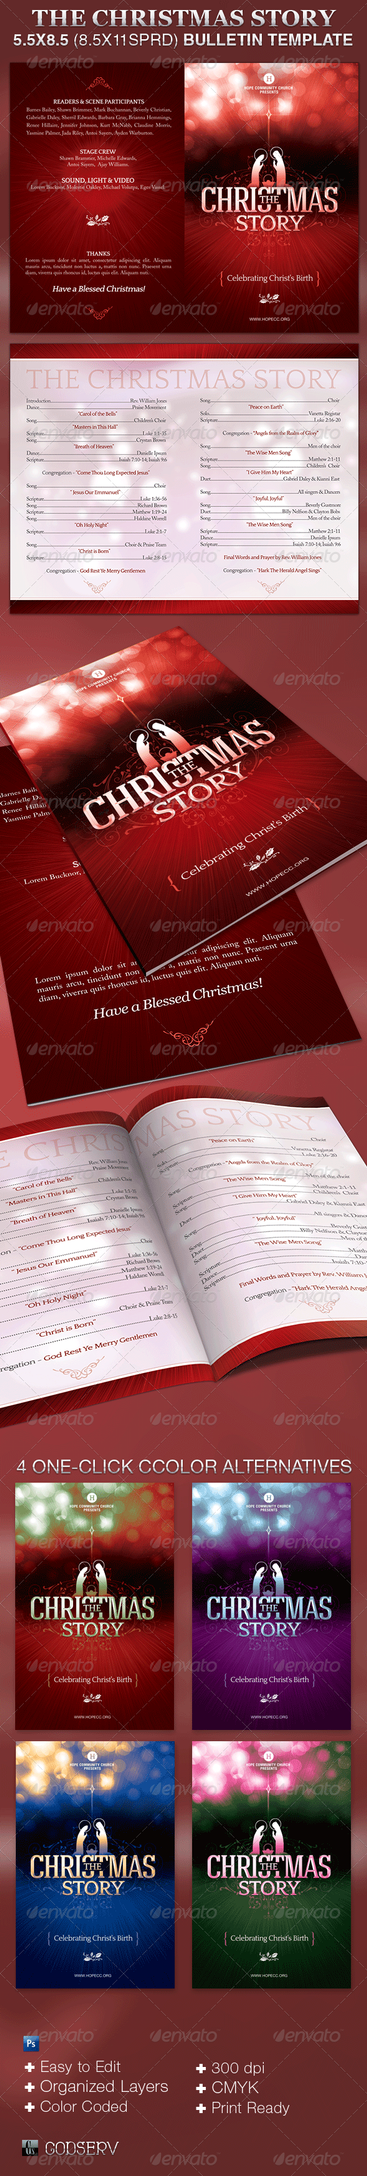 Church Bulletin Template - The Christmas Story by Godserv on DeviantArt